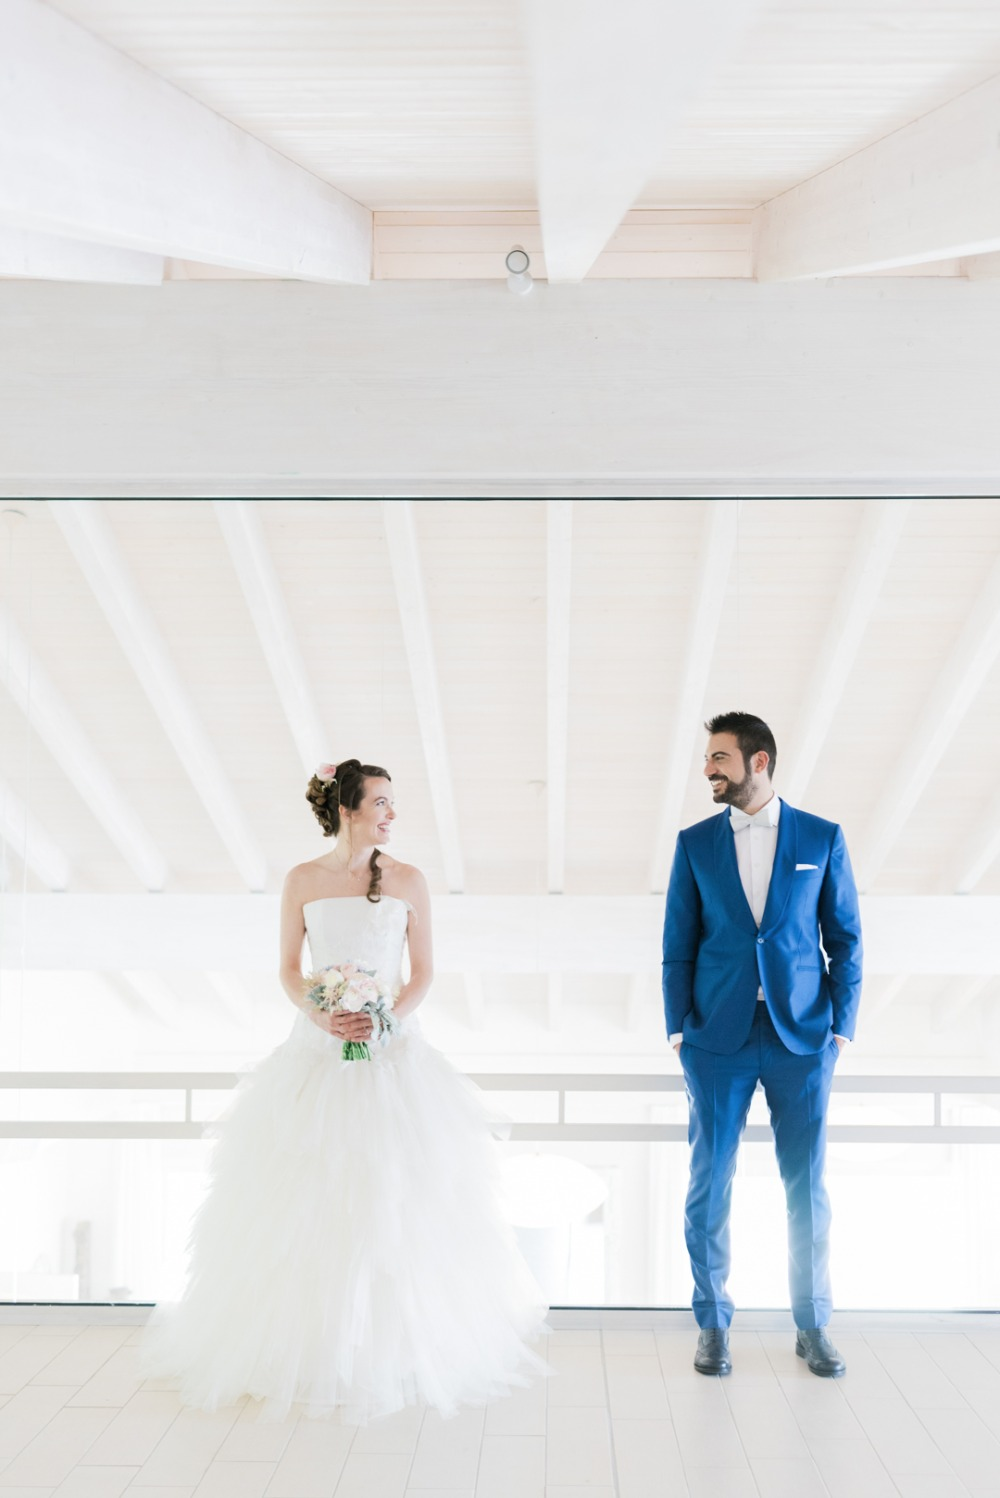 royal blue groom suit and classic bride in wedding gown